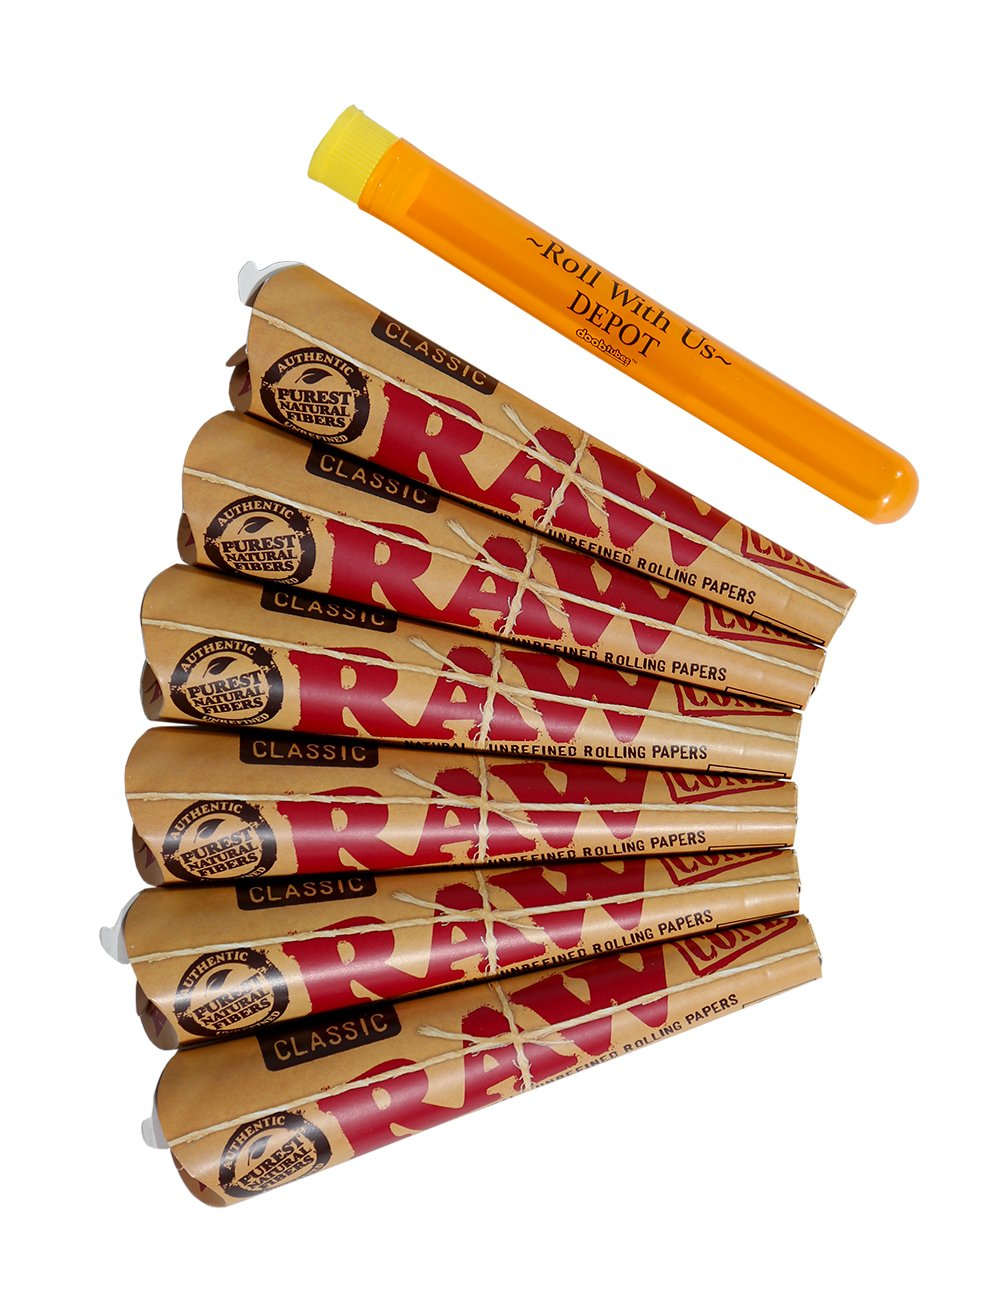 RAW 1 1/4 Classic Rolling Paper Pre-Rolled Cones (6 packs of 6 cones, 36 total) Includes Roll With Us Doobtube by Roll With Us Depot